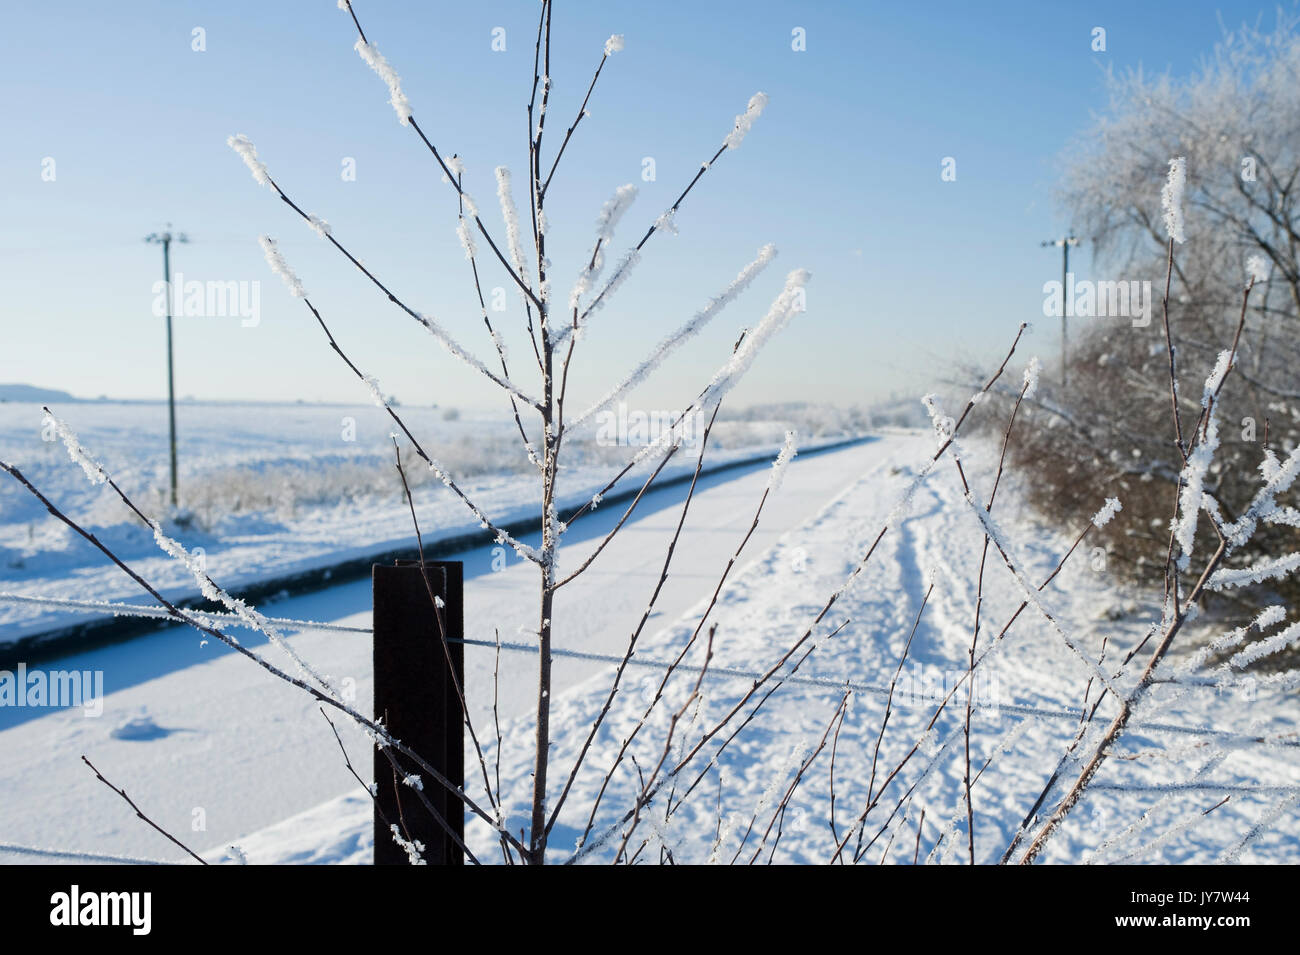 Snowy landscape of Boothstown - Stock Image